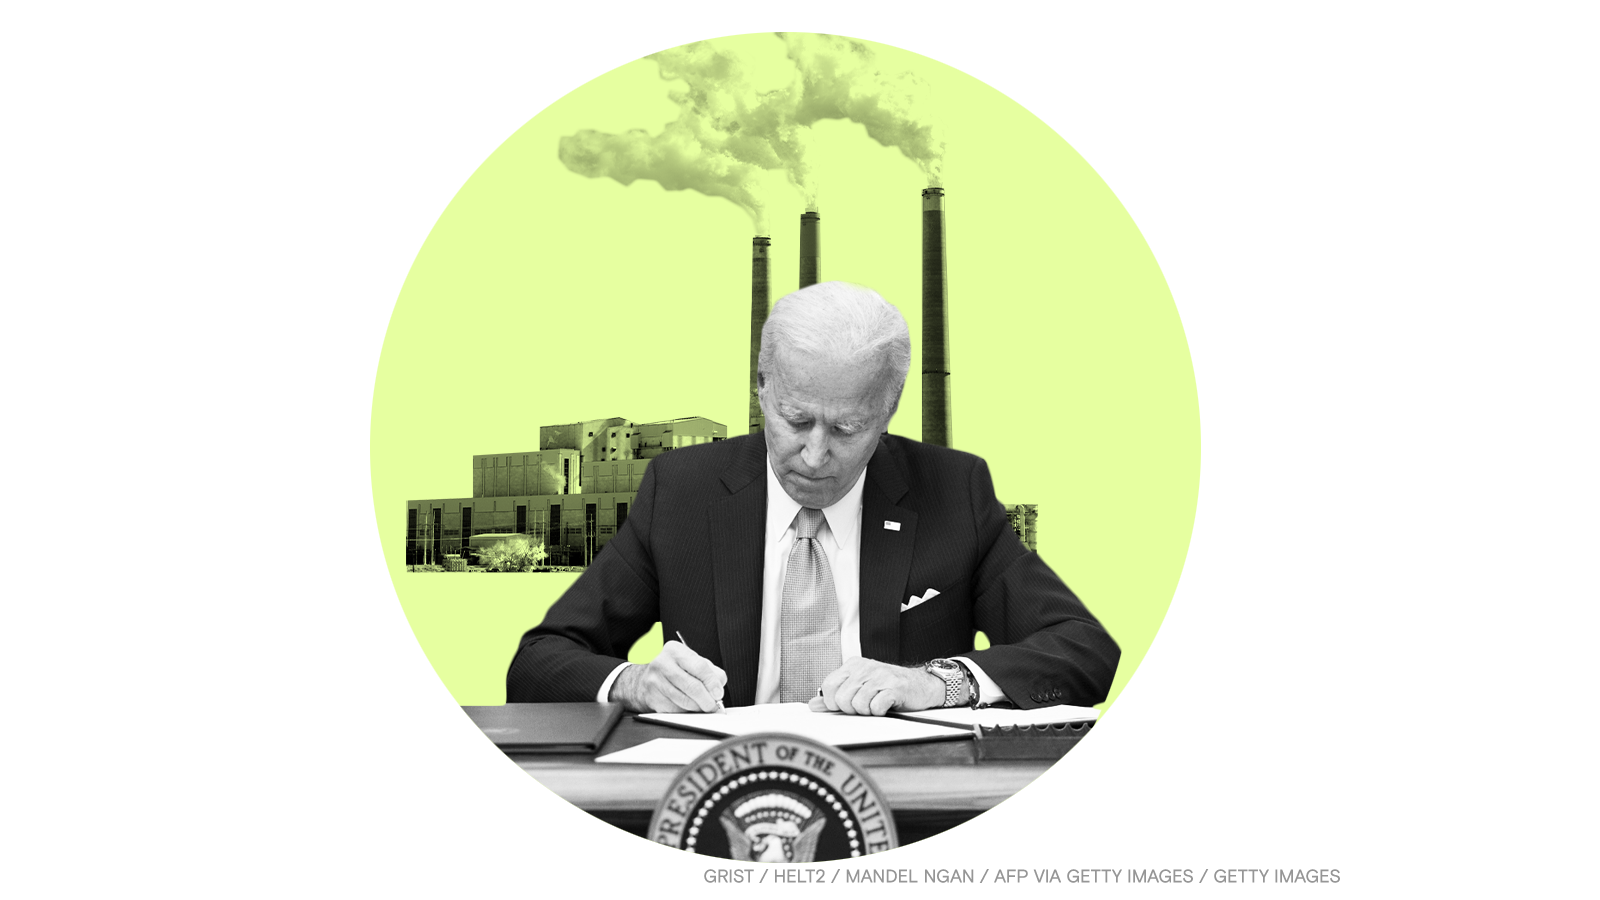 Biden signing a bill against a background of smokestacks.